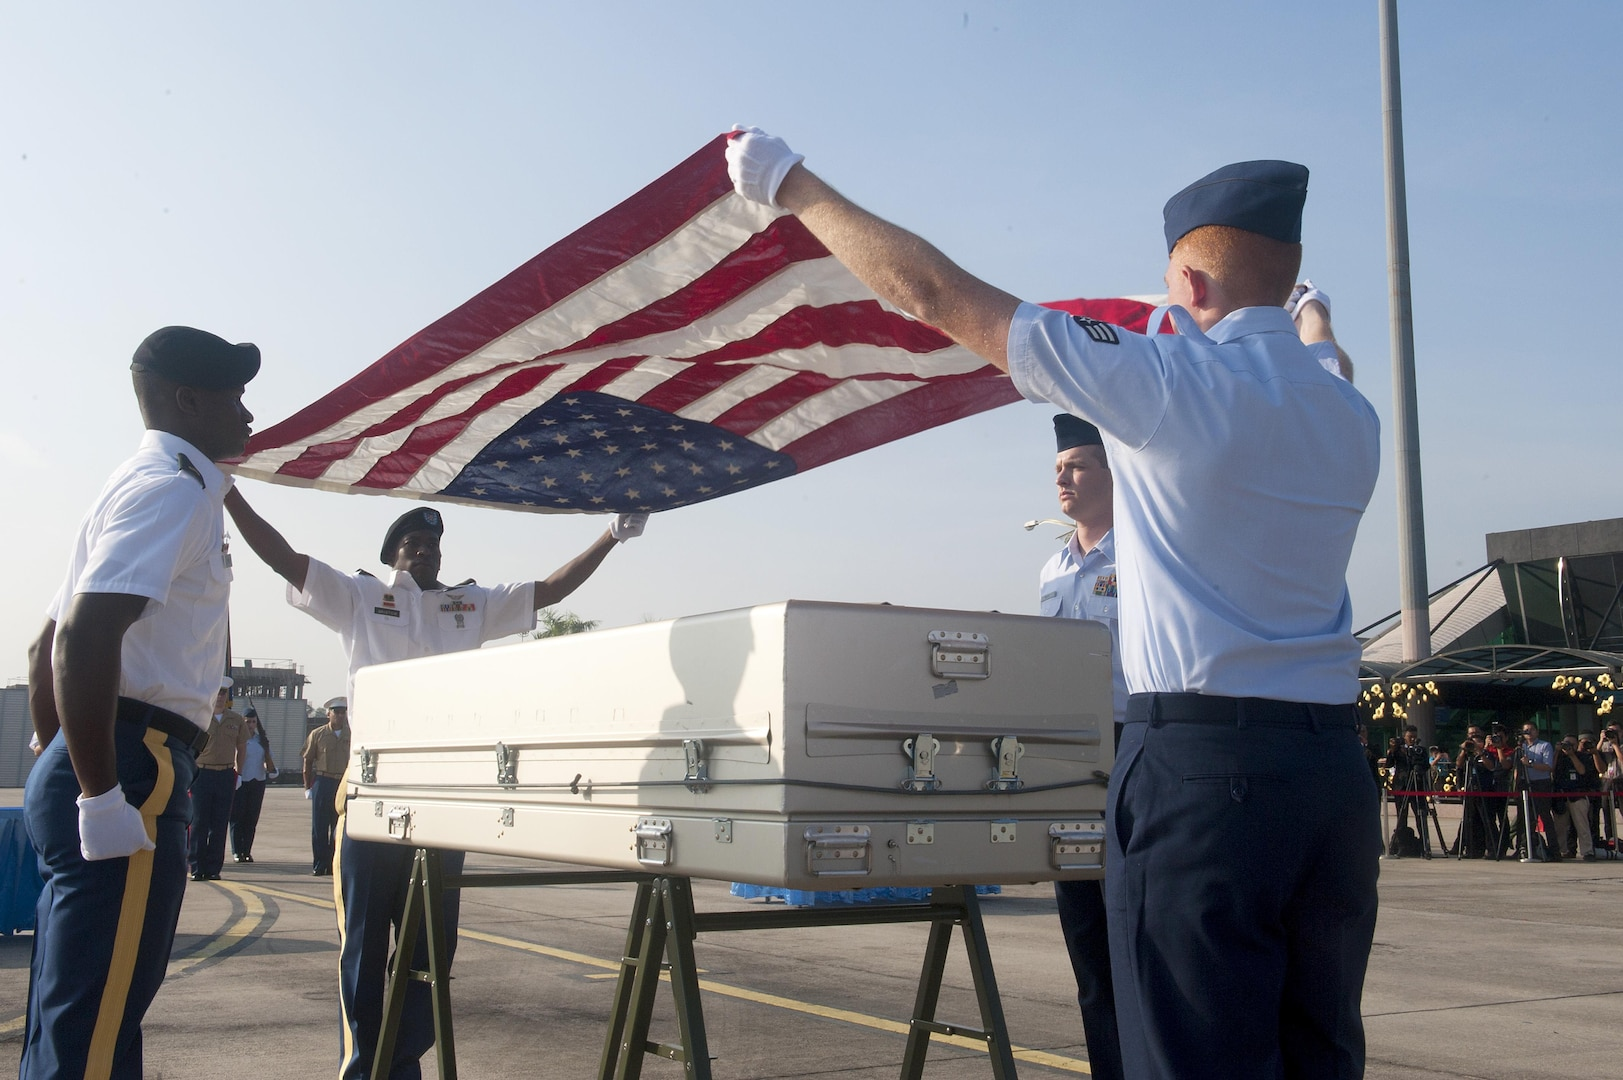 A joint service team drapes an American flag over a casket during a repatriation ceremony at Subang Air Base, Malaysia, Nov. 5, 2015. The 15-member team comprised of members of the Defense POW/MIA Accounting Agency as well service members from United States Army Pacific and Pacific Air Force was sent from Hawaii to honor the remains of a fallen service member who paid the ultimate sacrifice when his plane went down over Malaysia in 1945. The ceremony signifies the transfer of the remains from Malaysia back to the U.S. where the service member can be returned home. The ceremony marks the first of its kind between the two countries. The mission of the Defense POW/MIA Accounting Agency is to provide the fullest possible accounting for our missing personnel to their families and the nation. (U.S. Air Force photo by Staff Sgt. Brian J. Valencia)